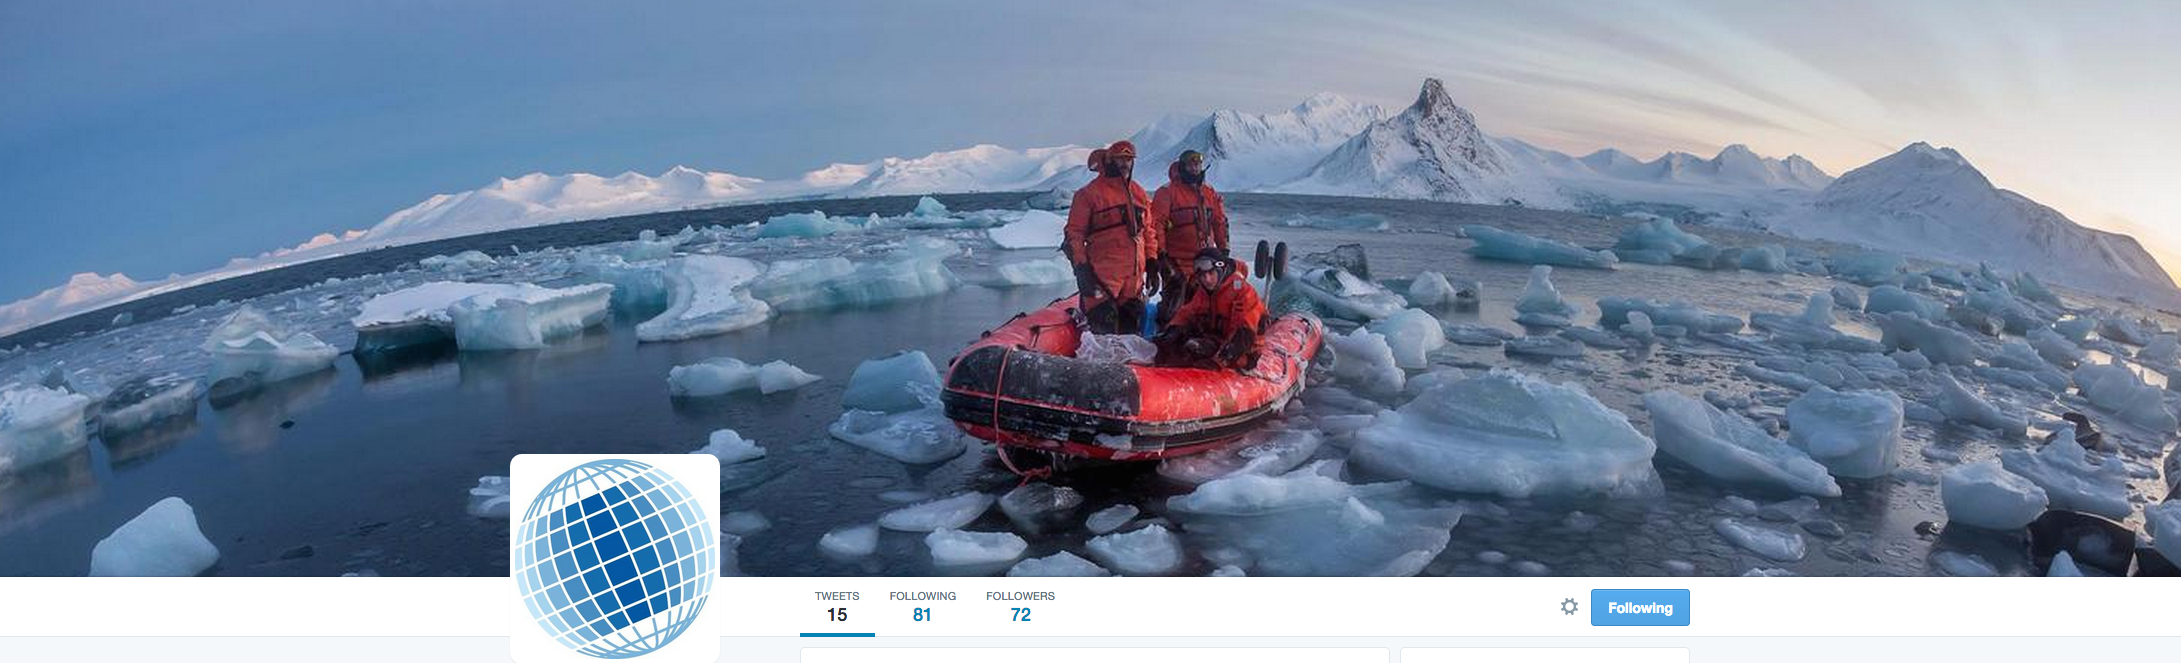 Eu-PolarNet: the world's largest consortium of expertise and infrastructure for polar research.